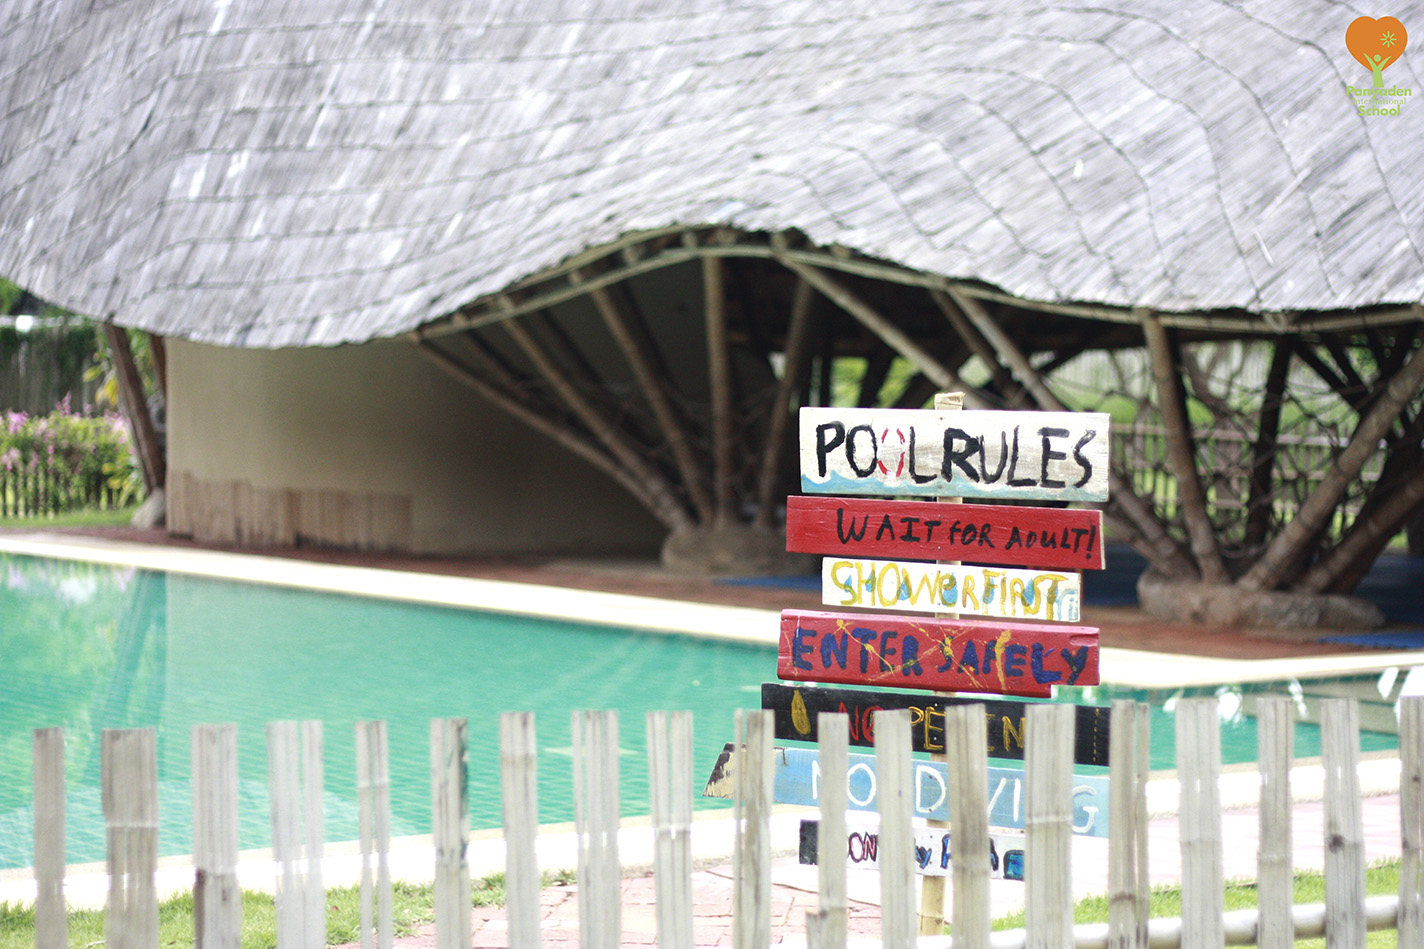 Panyaden Swimming Pool Rules Signboards made by Year 6/7 students